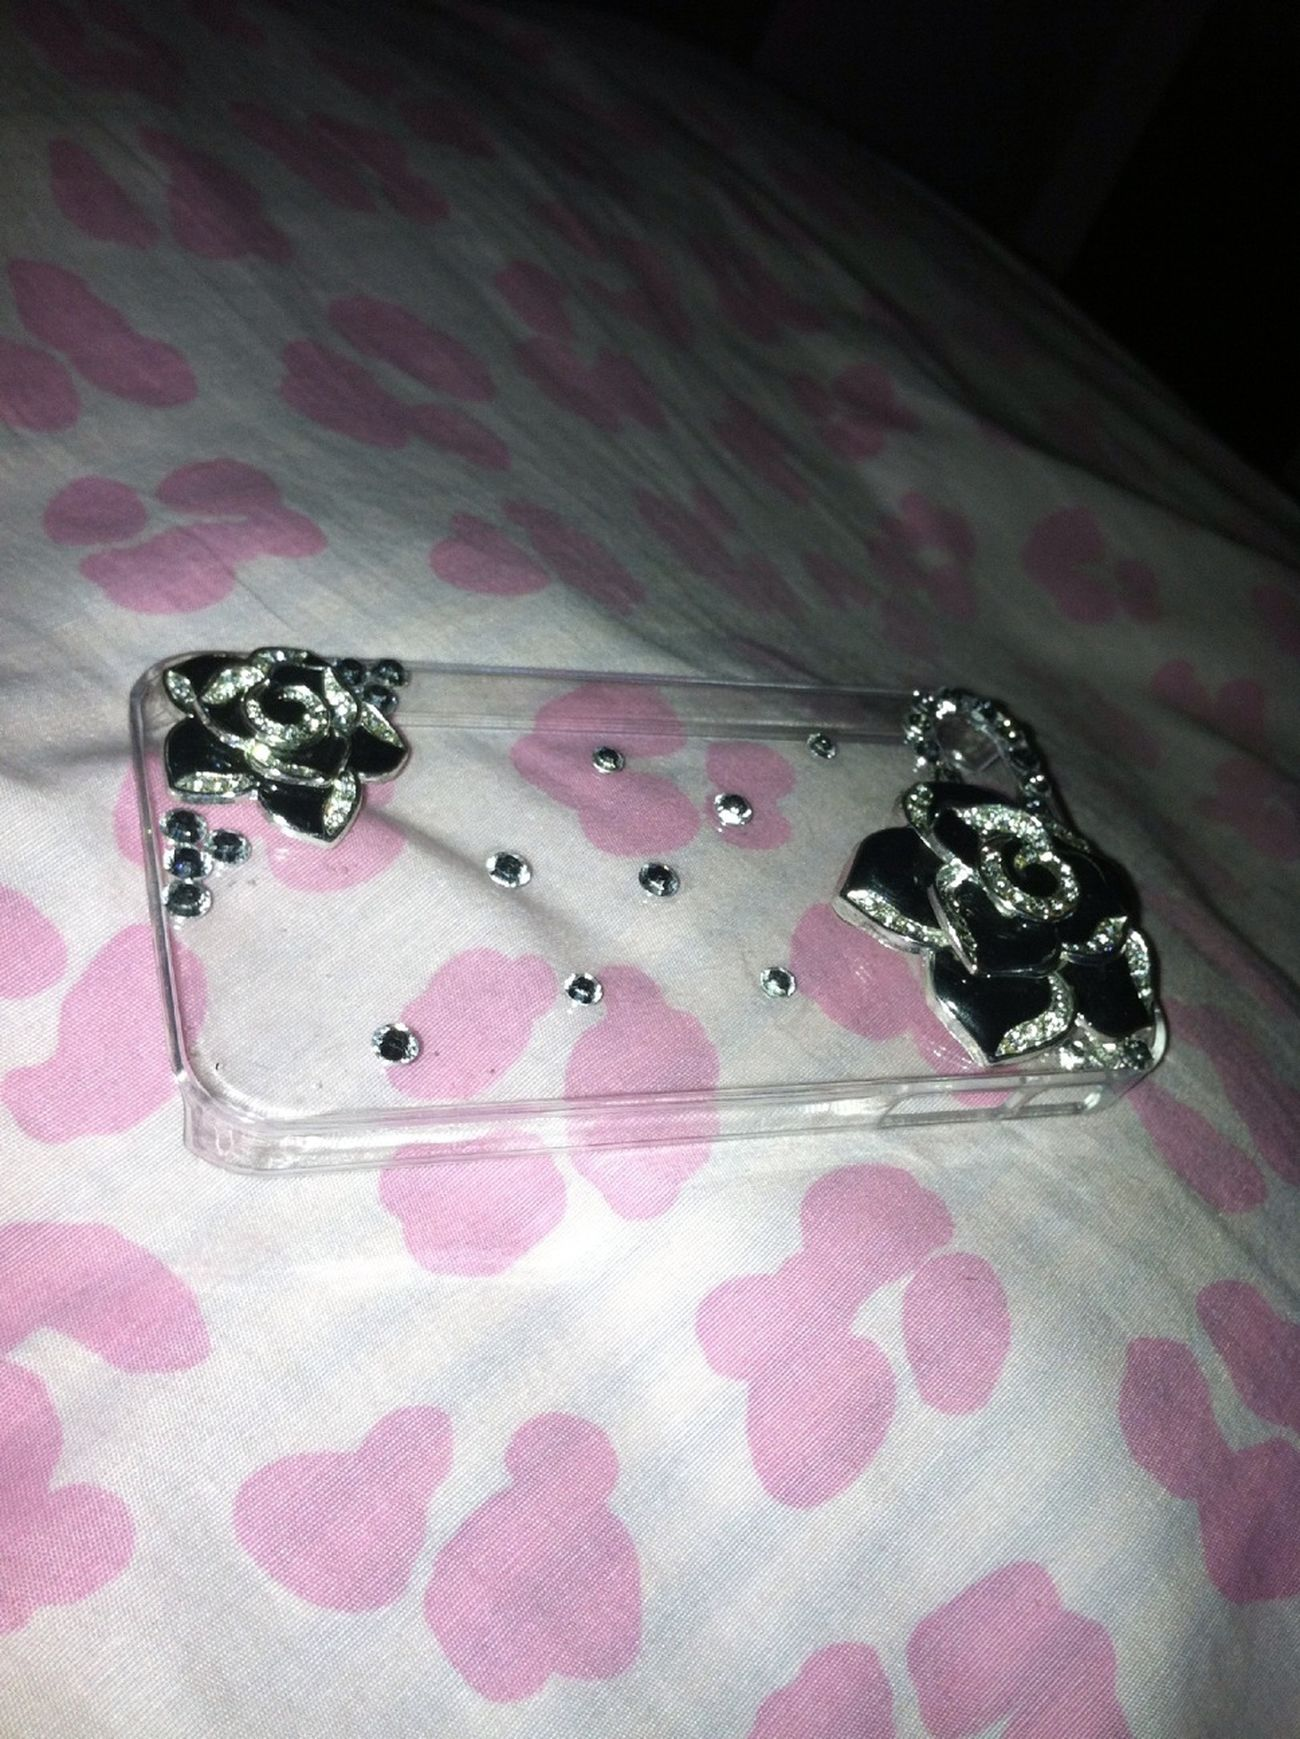 New IPhone Case Latest One From Lexi